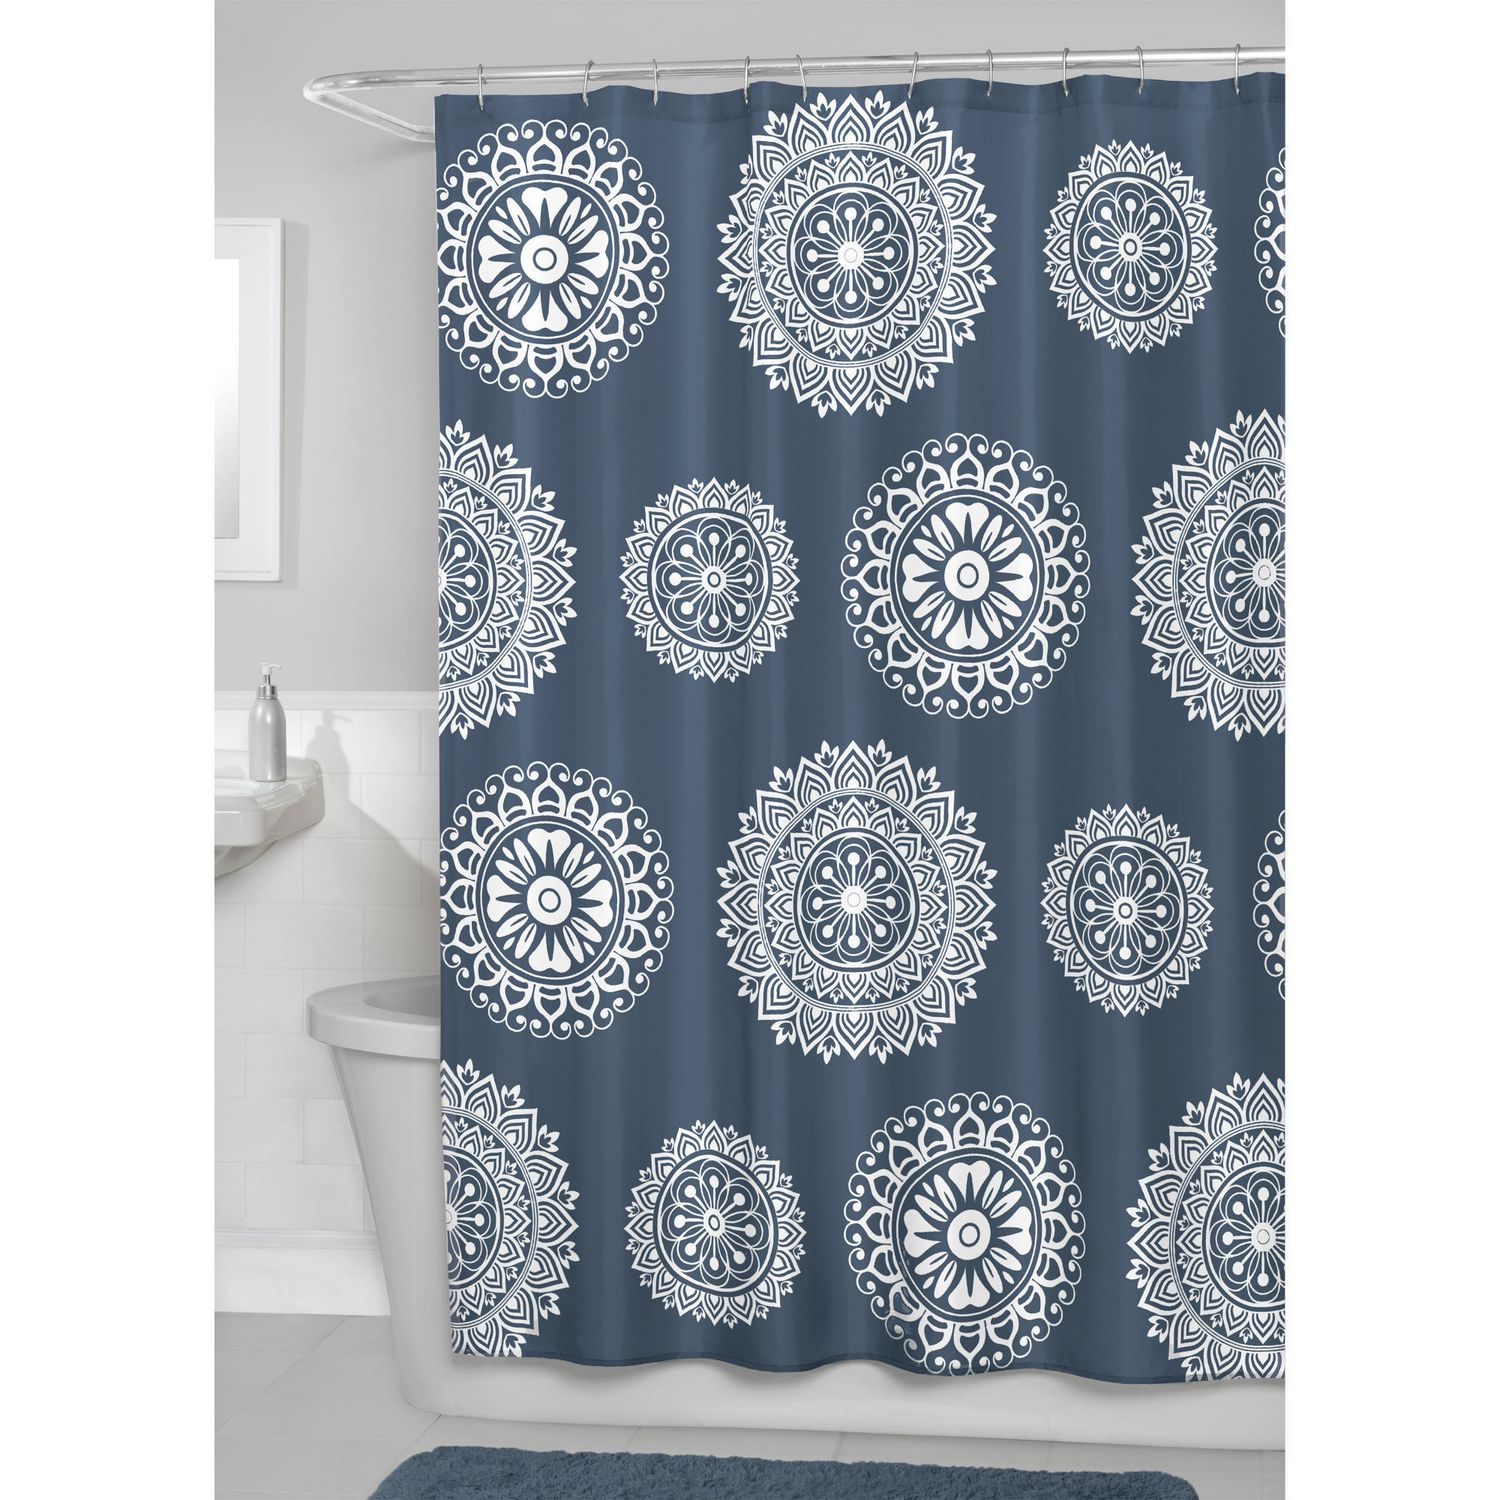 Luxury black and gold shower curtains - Hometrends Maren Fabric Shower Curtain